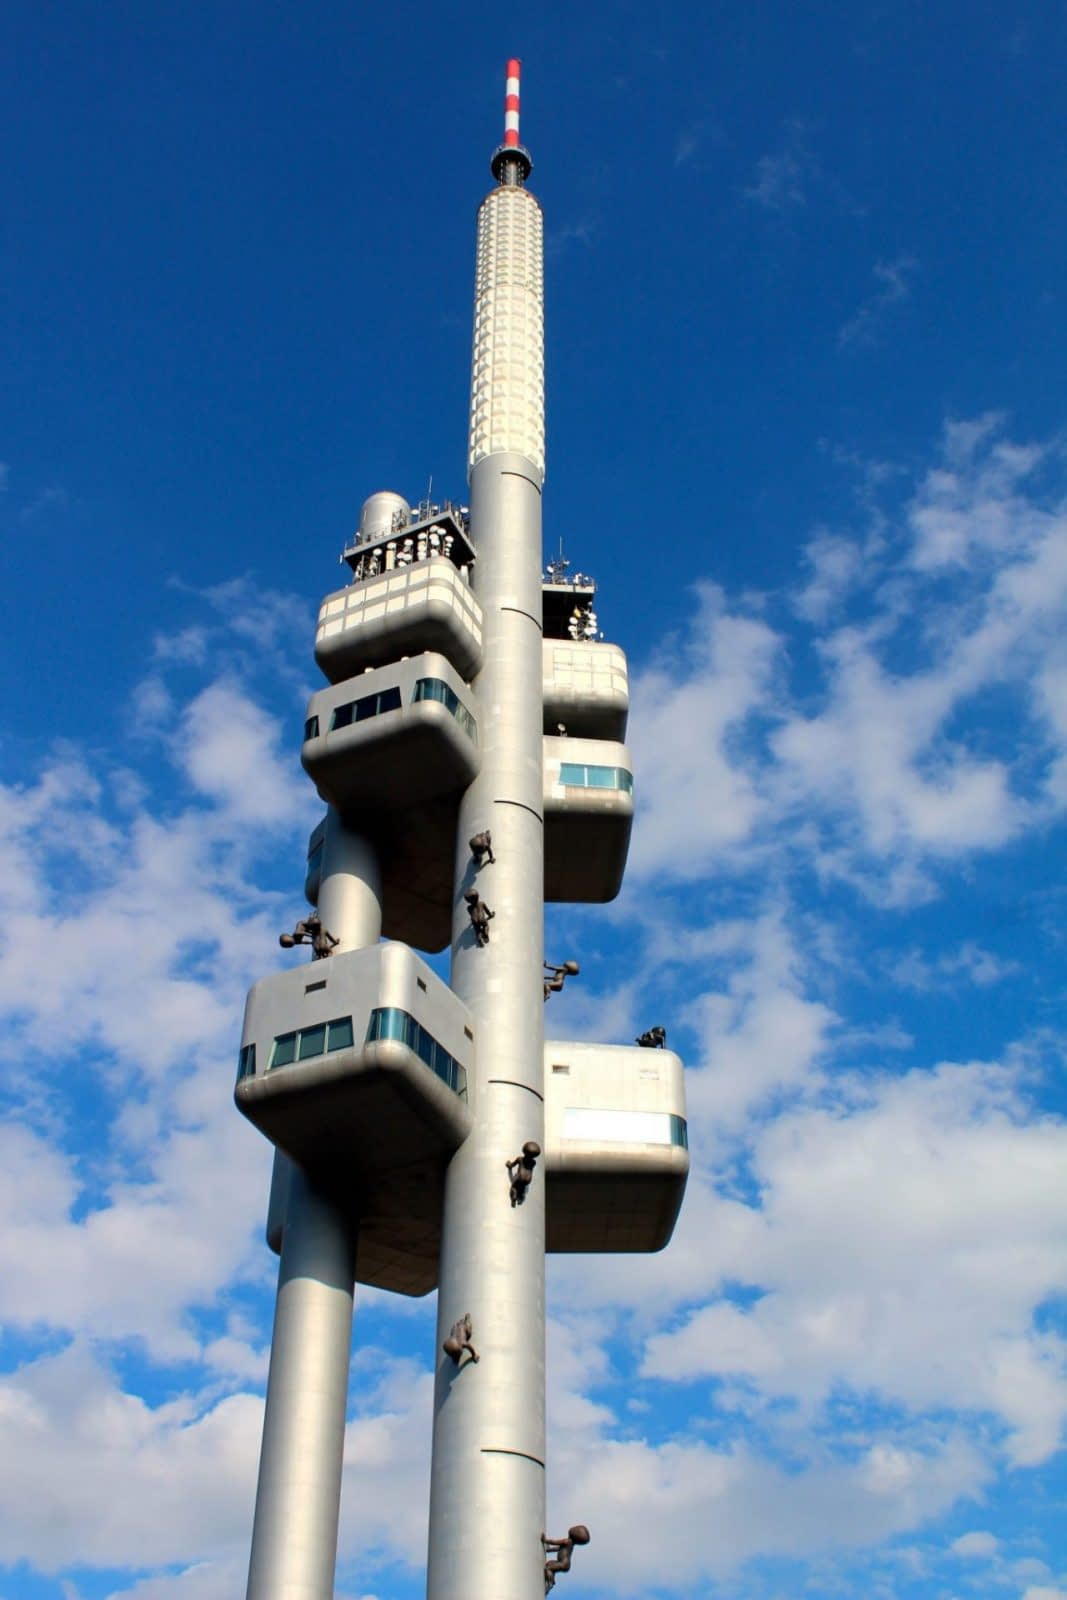 2 – TV tower